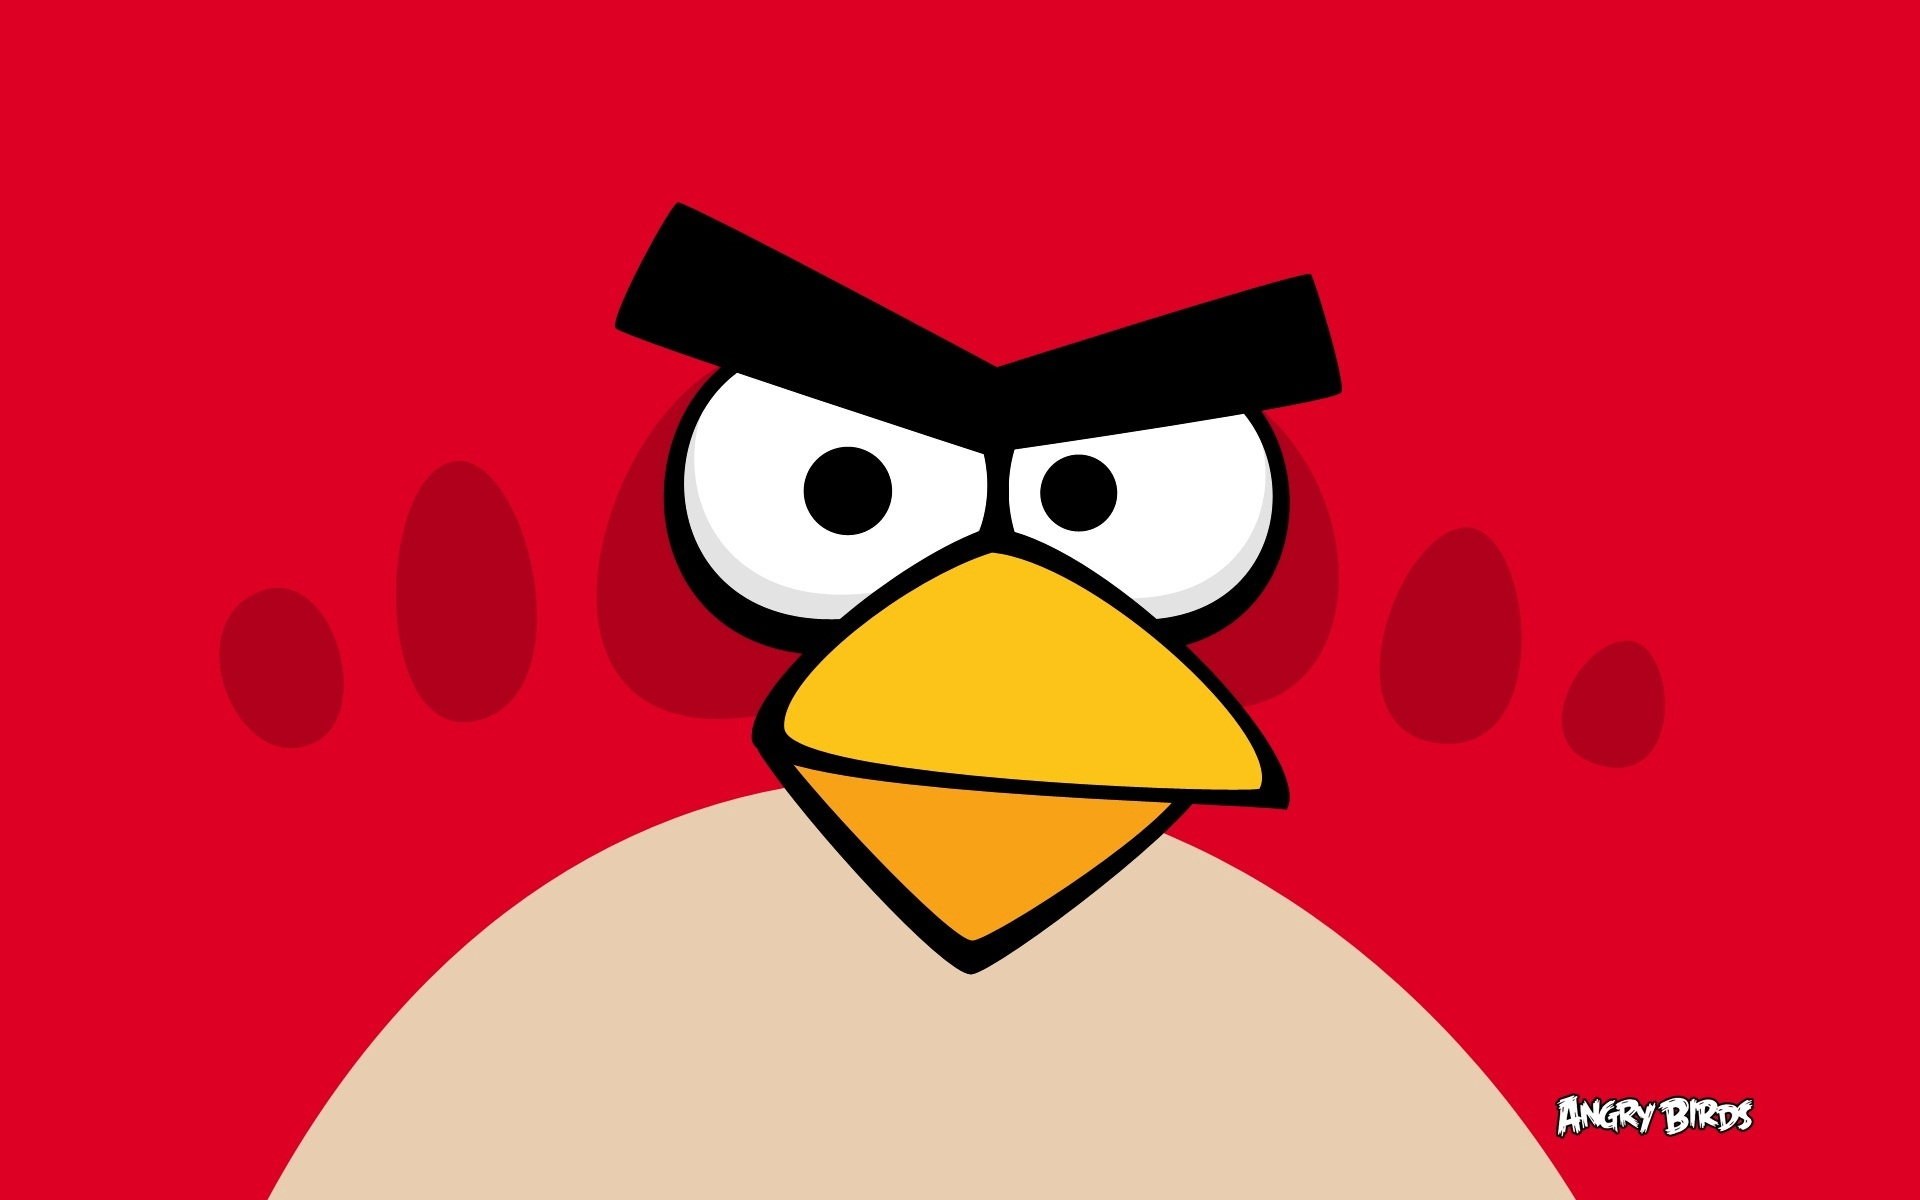 angry birds wallpaper 13221